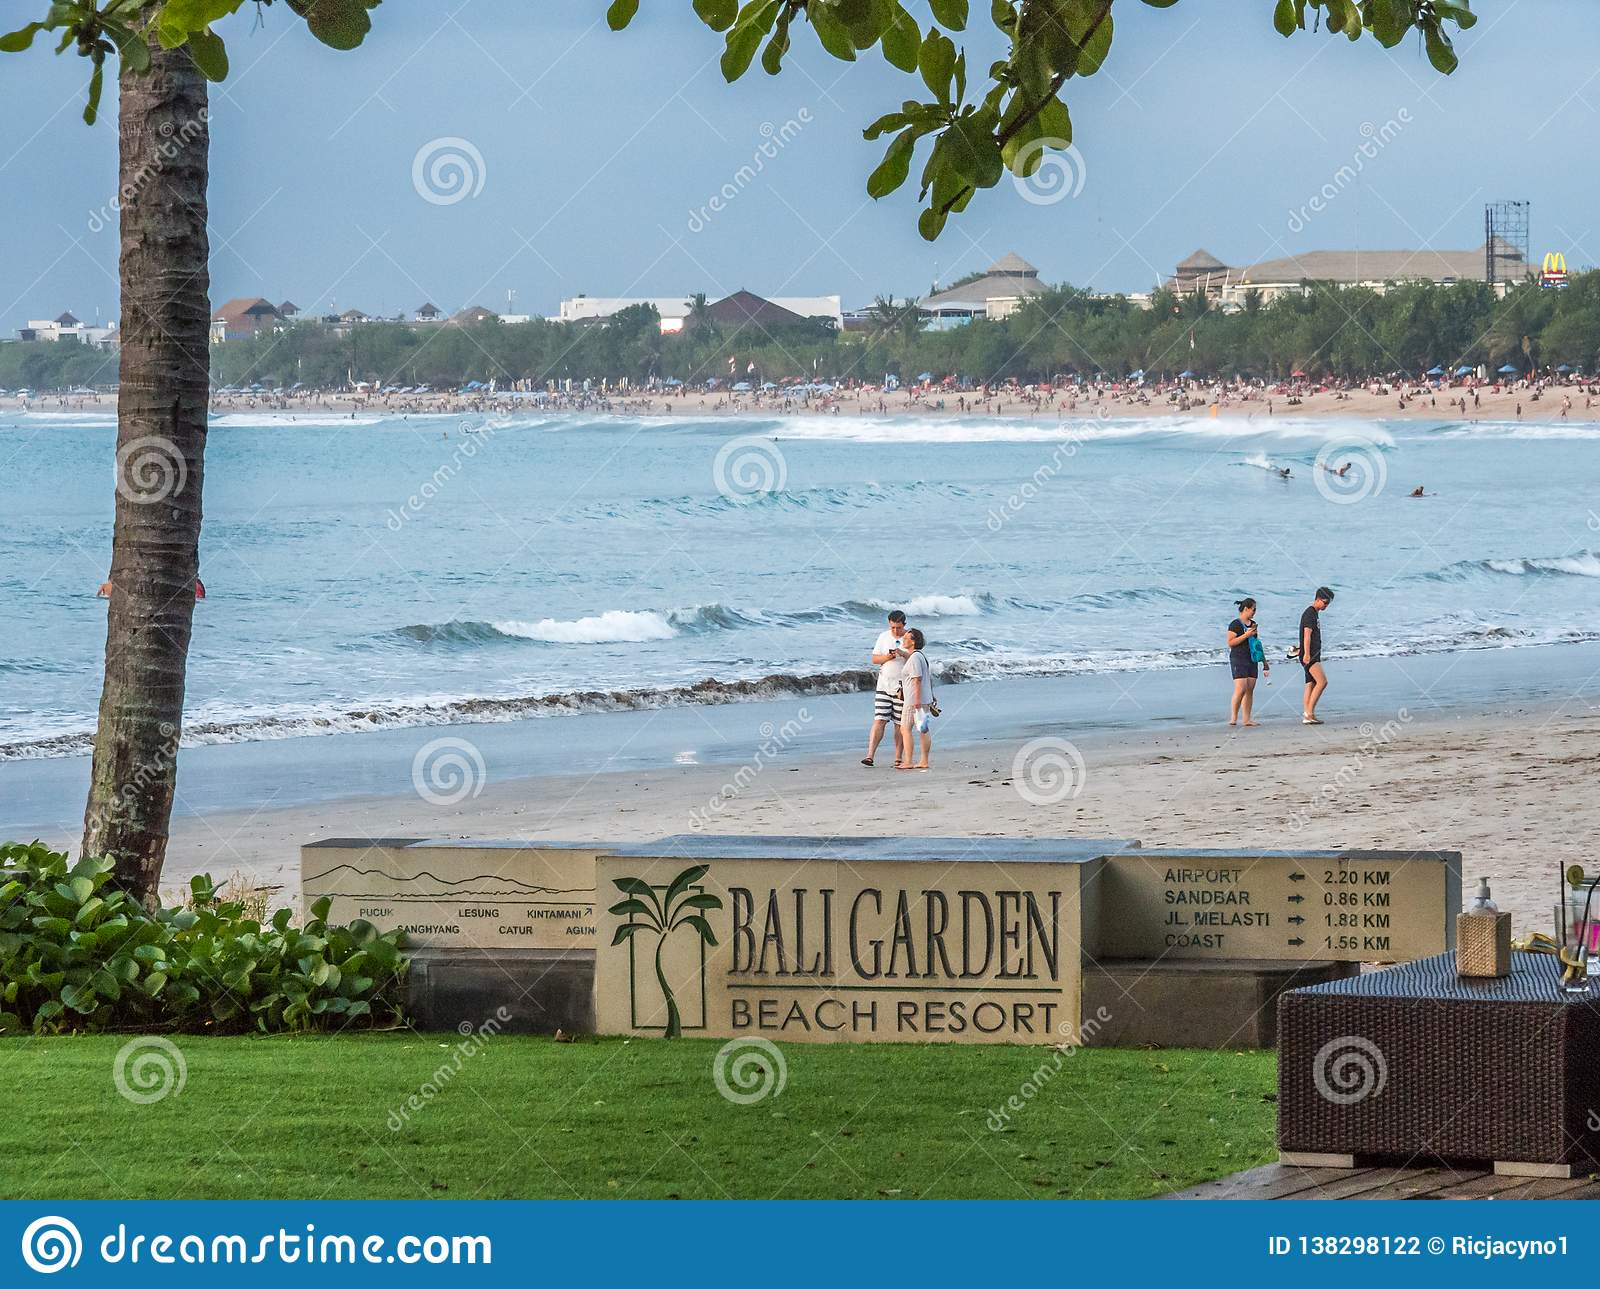 Bali Garden Beach Resort A Popular Place For The Sunset Dinners Editorial Photography Image Of Seascape Blue 138298122